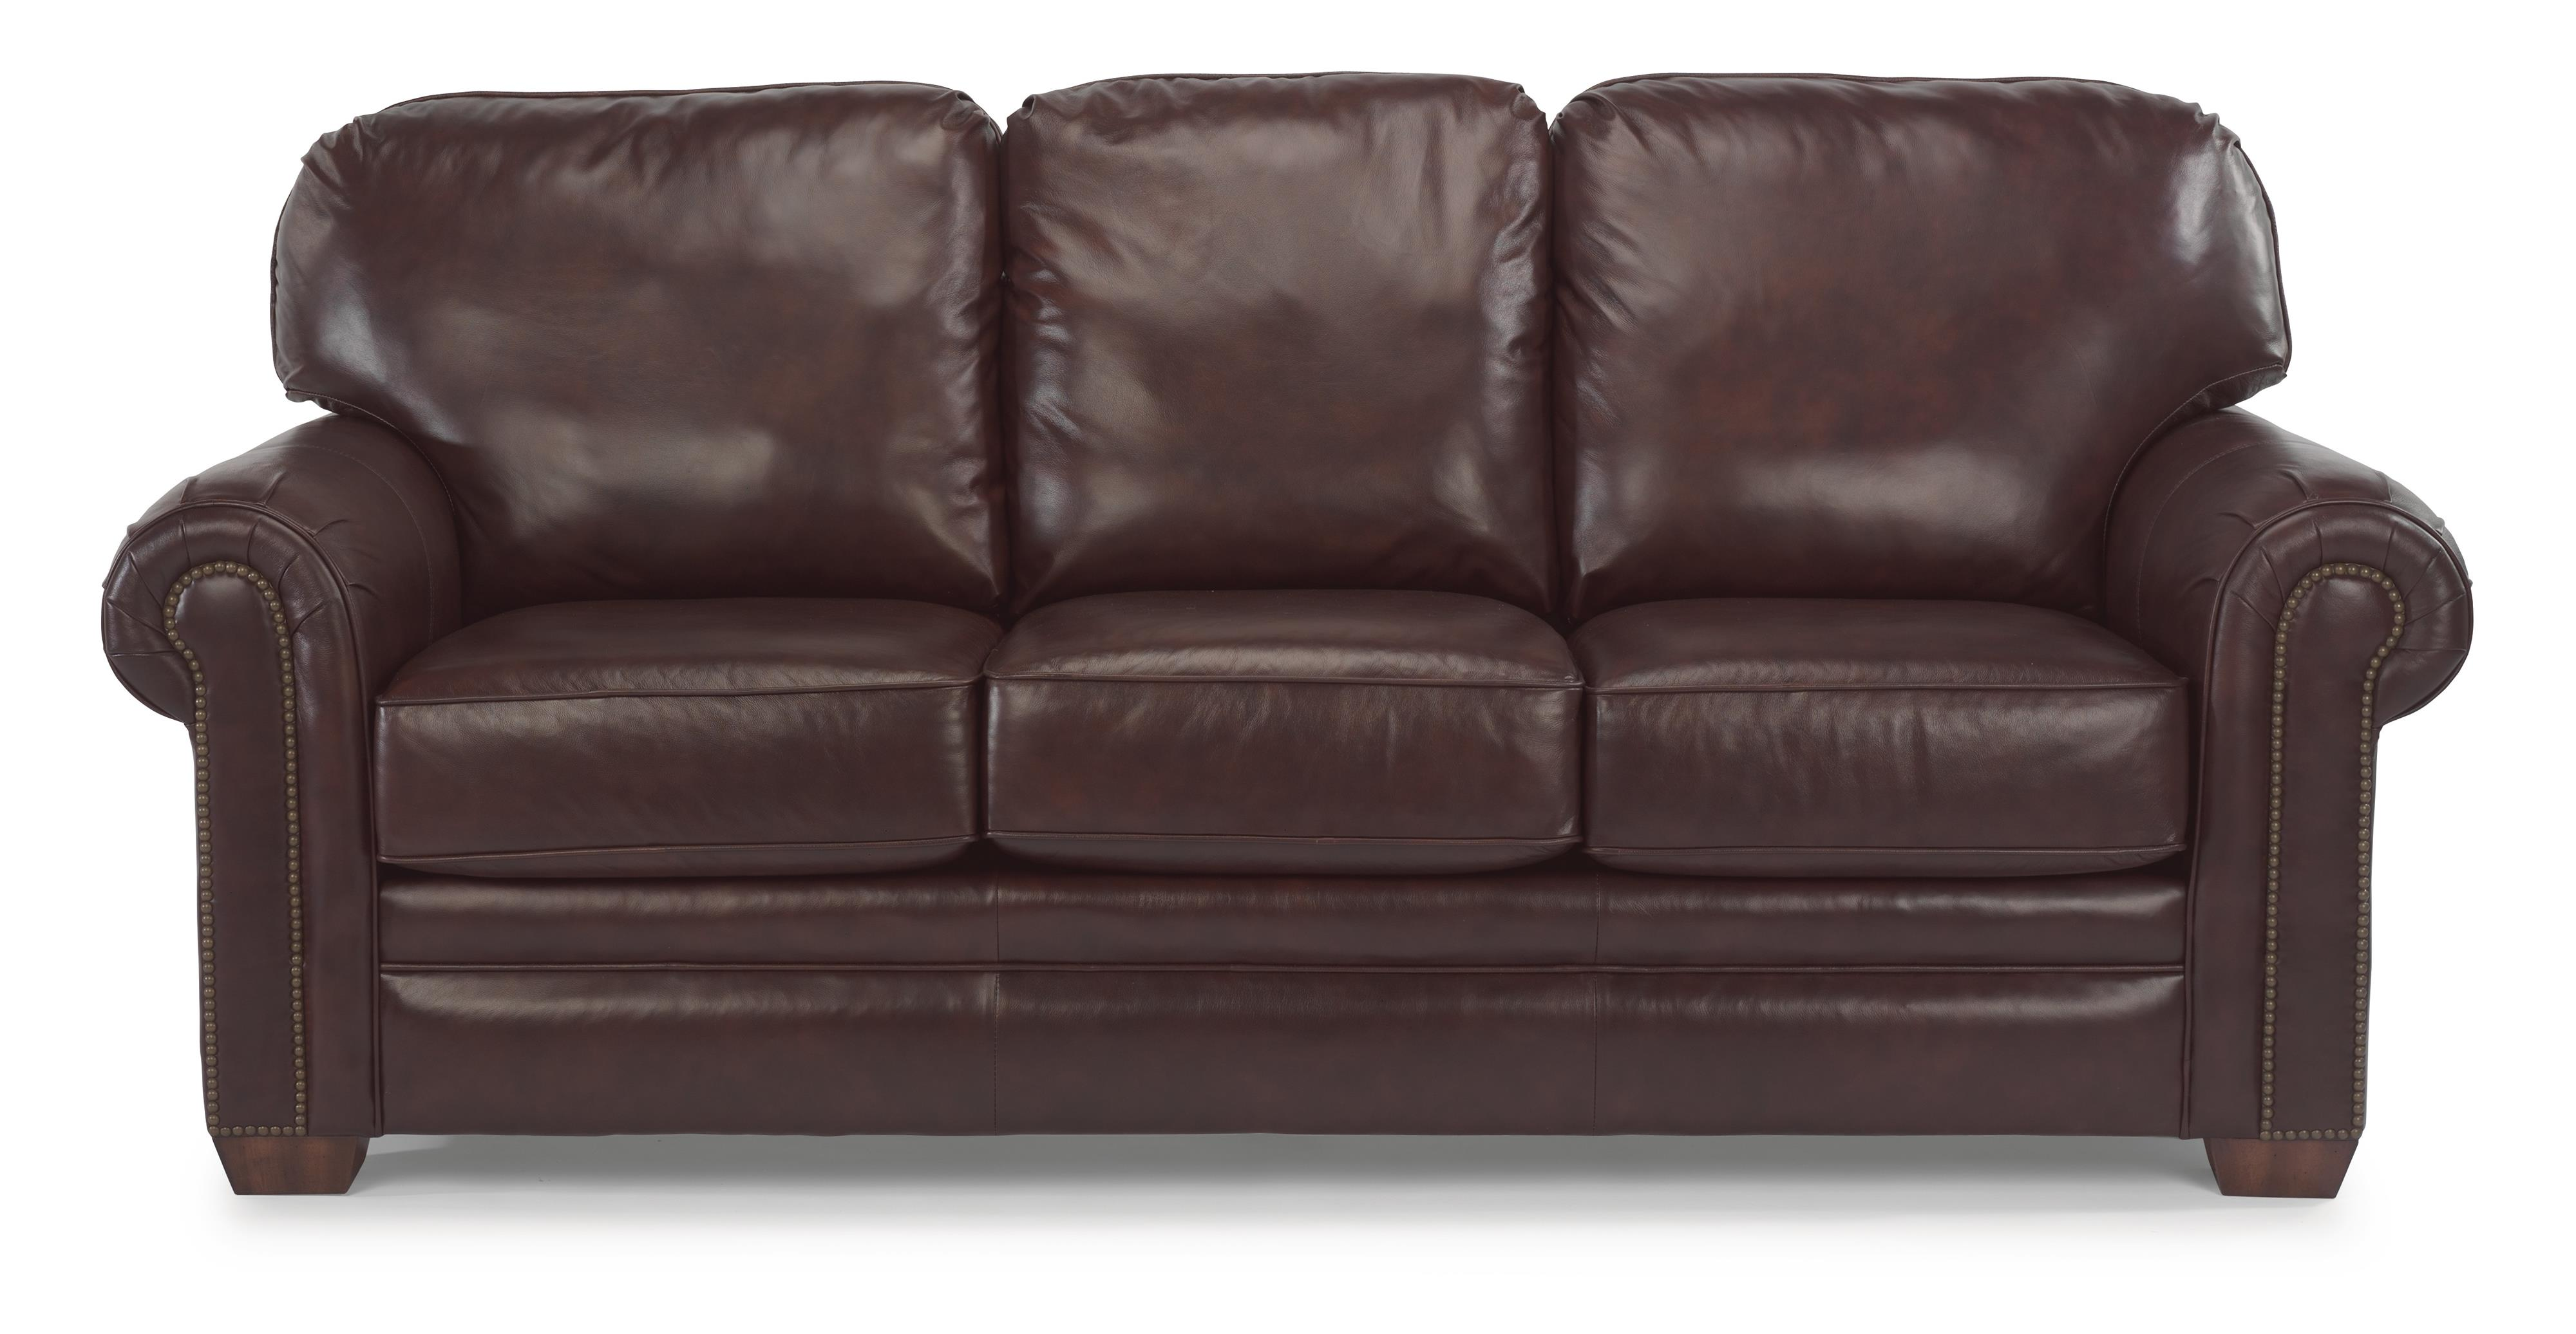 Flexsteel Harrison Sofa - Item Number: 3270-31